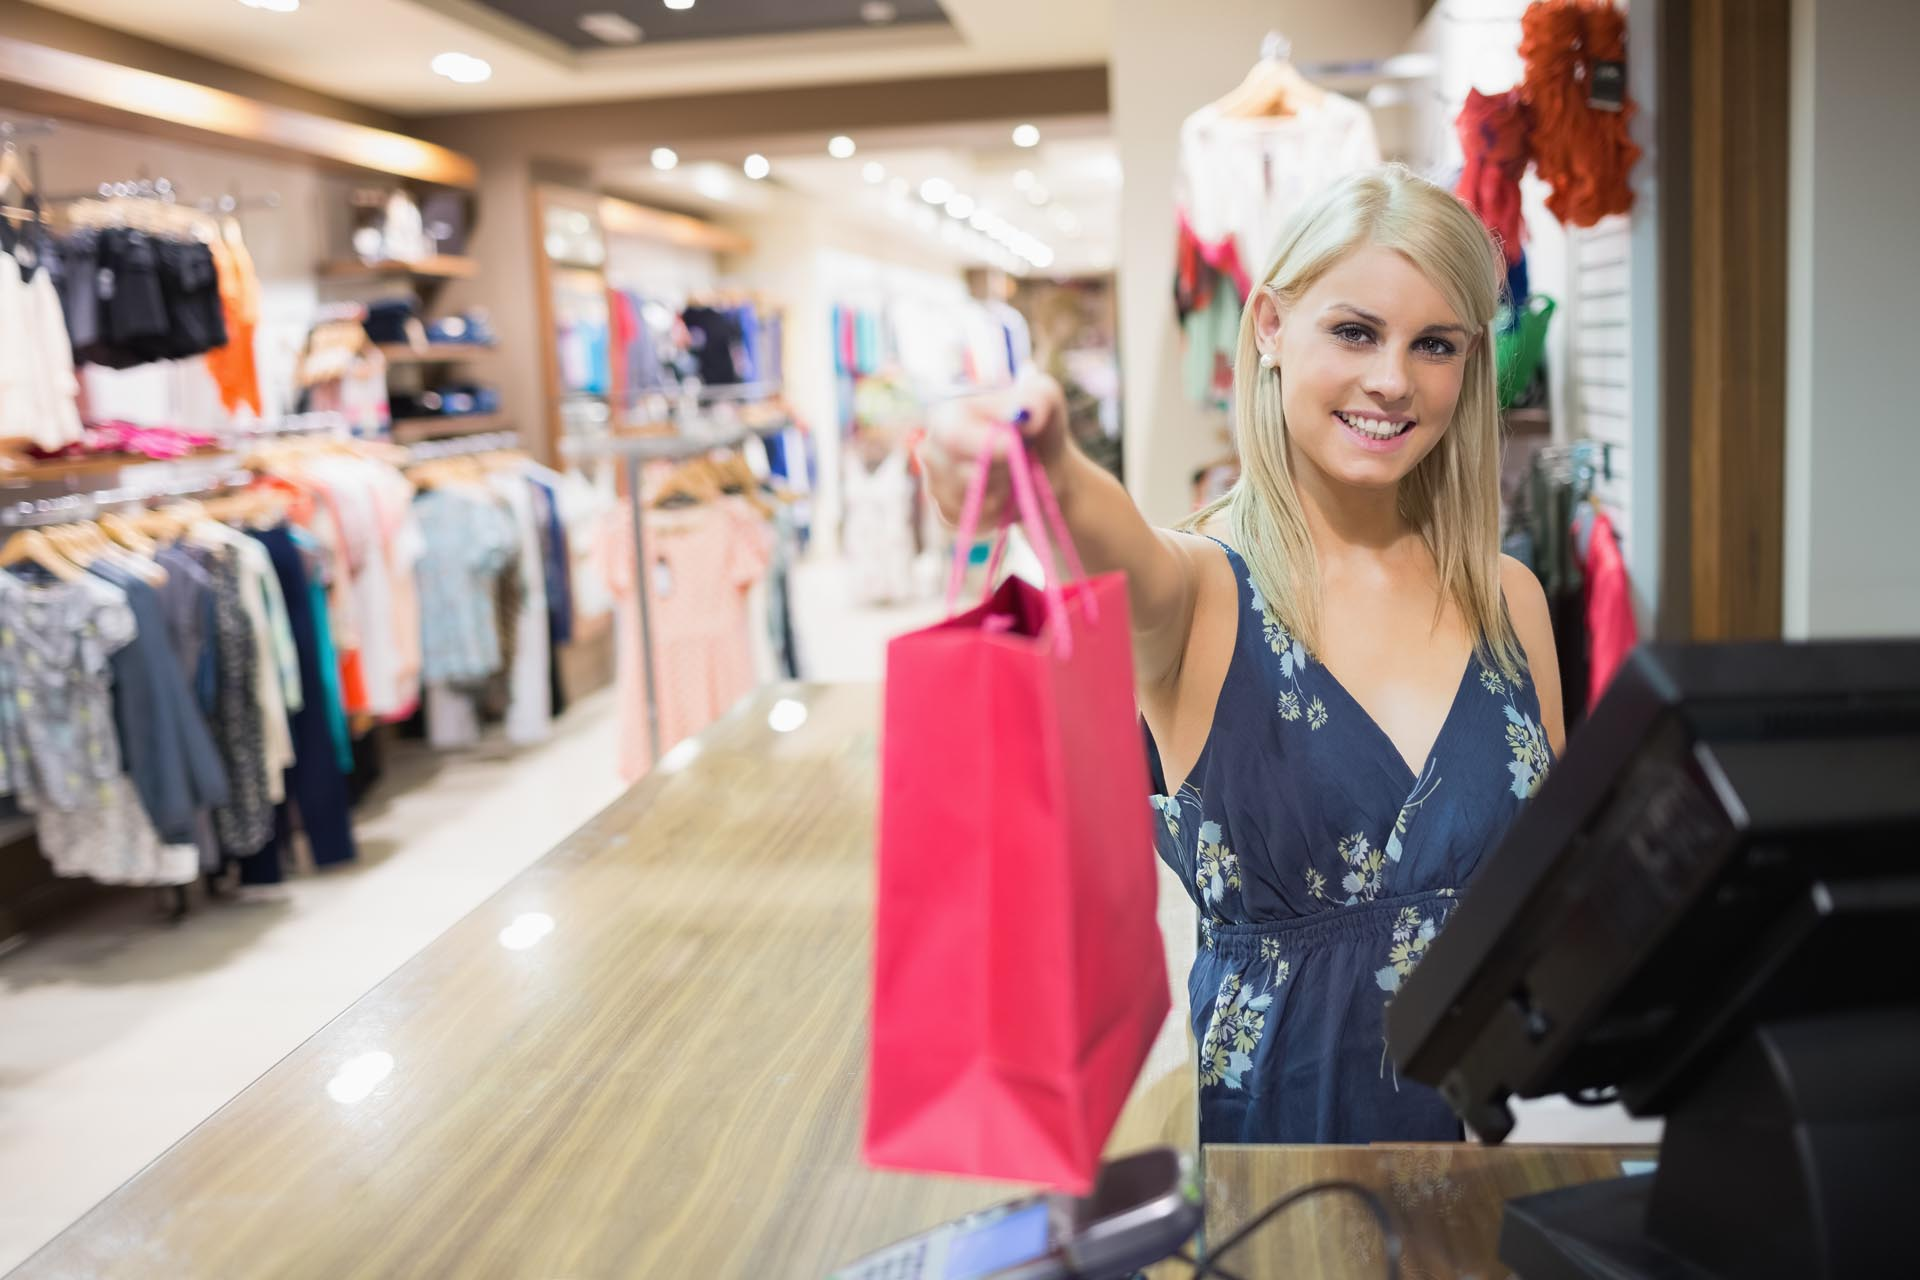 Smiling woman holding shopping bag at counter in clothes store